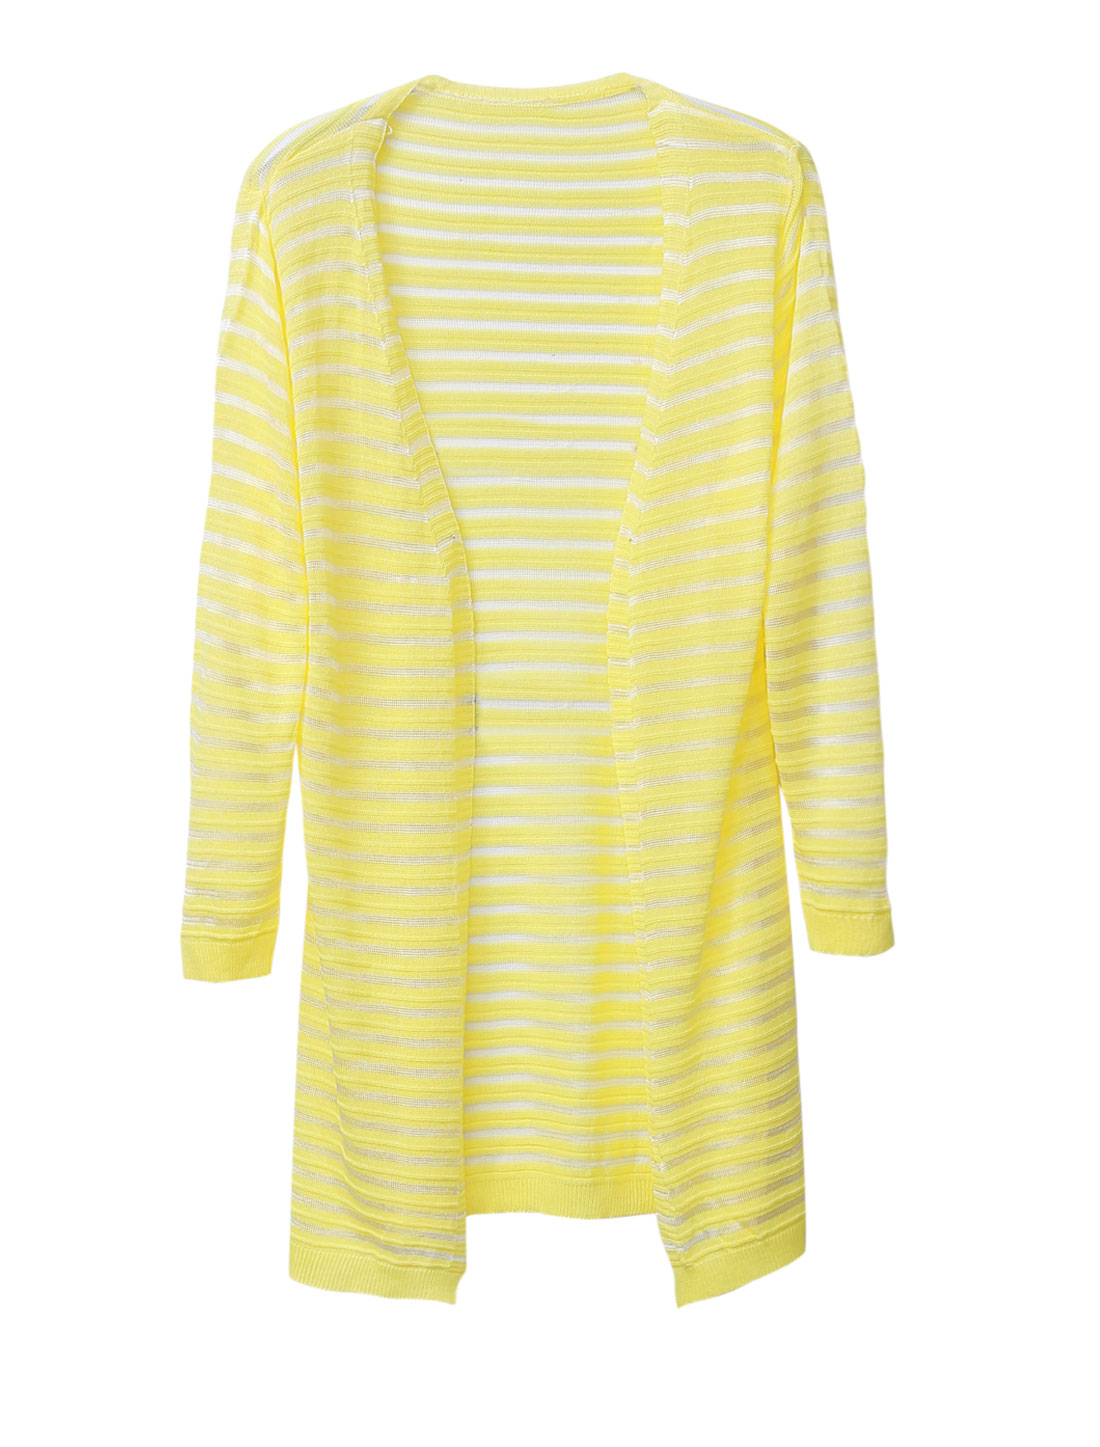 Women Front Opening 3/4 Sleeves Striped Casual Light Long Cardigan Light Yellow S